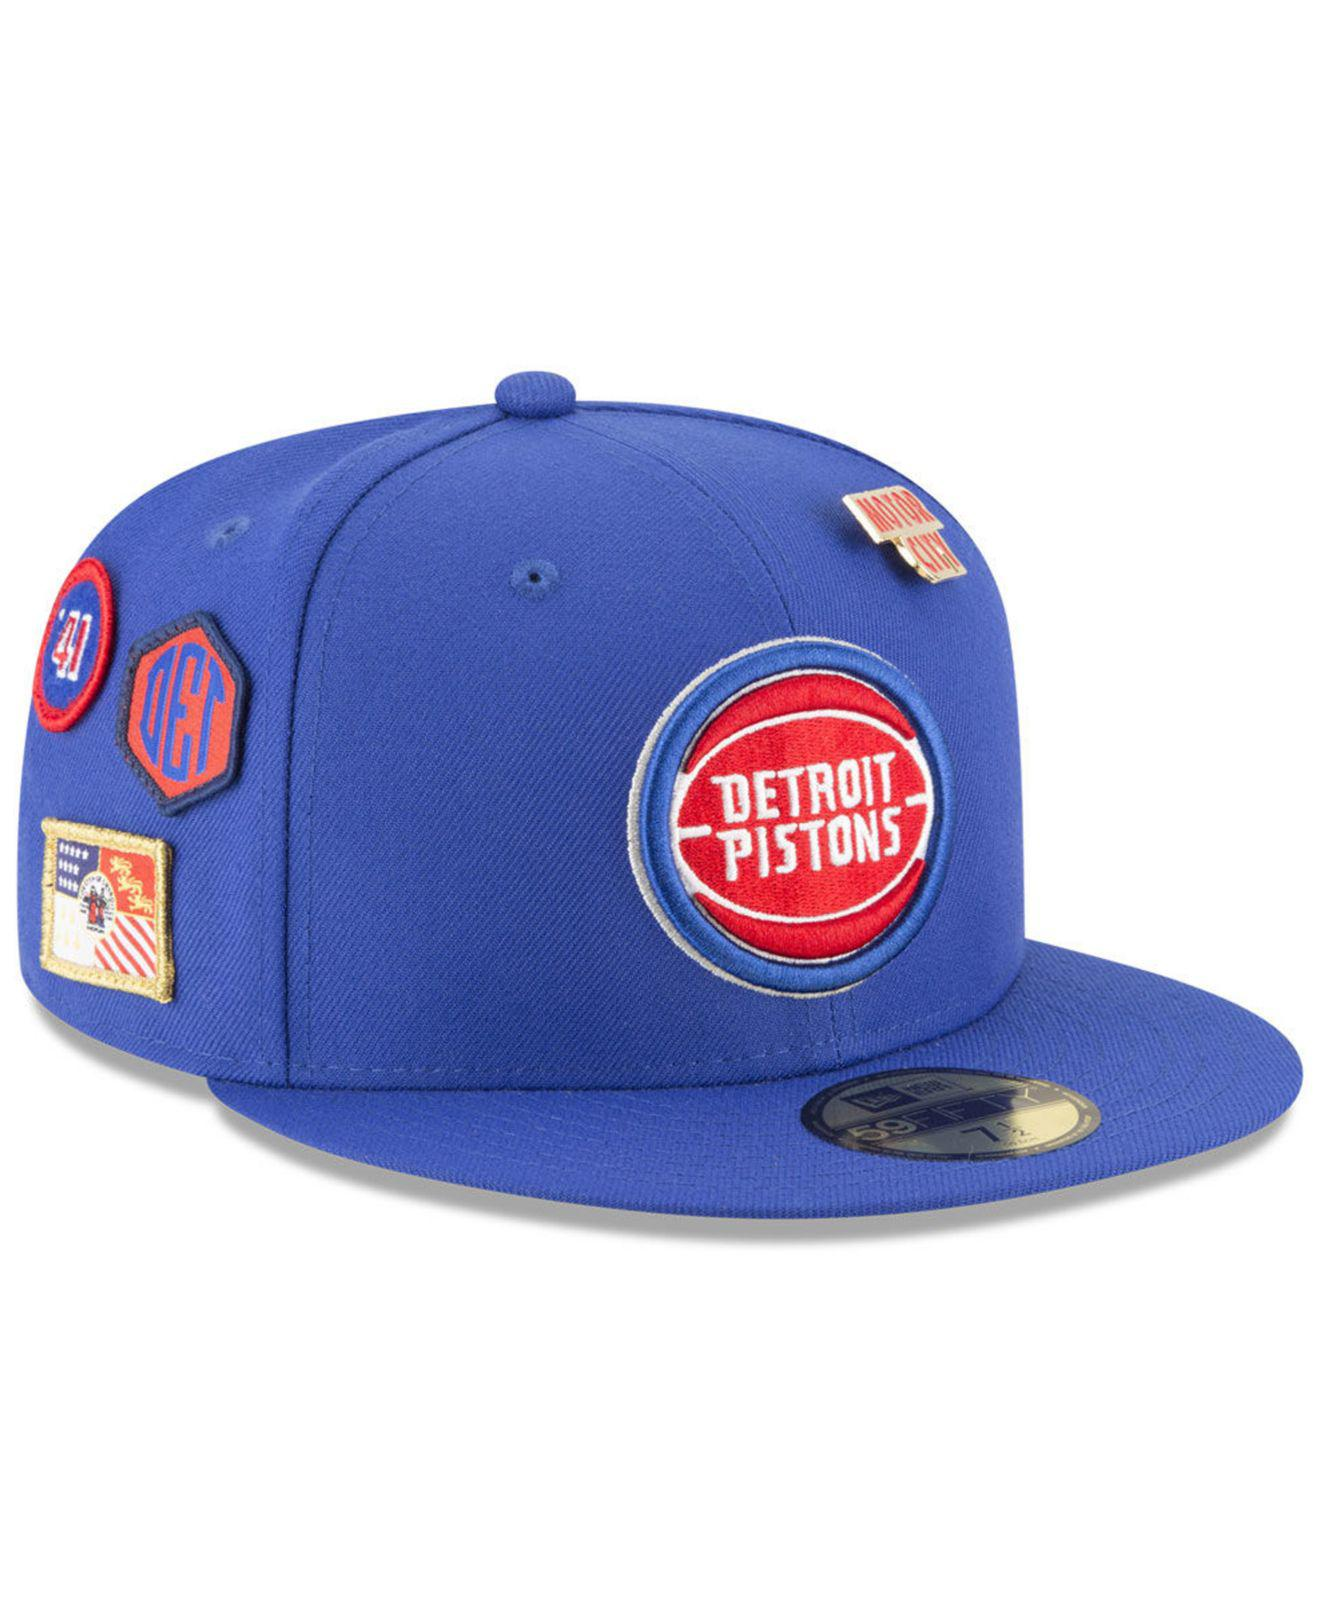 best website ce007 82c54 Lyst - KTZ Detroit Pistons On-court Collection 59fifty Fitted Cap in Blue  for Men